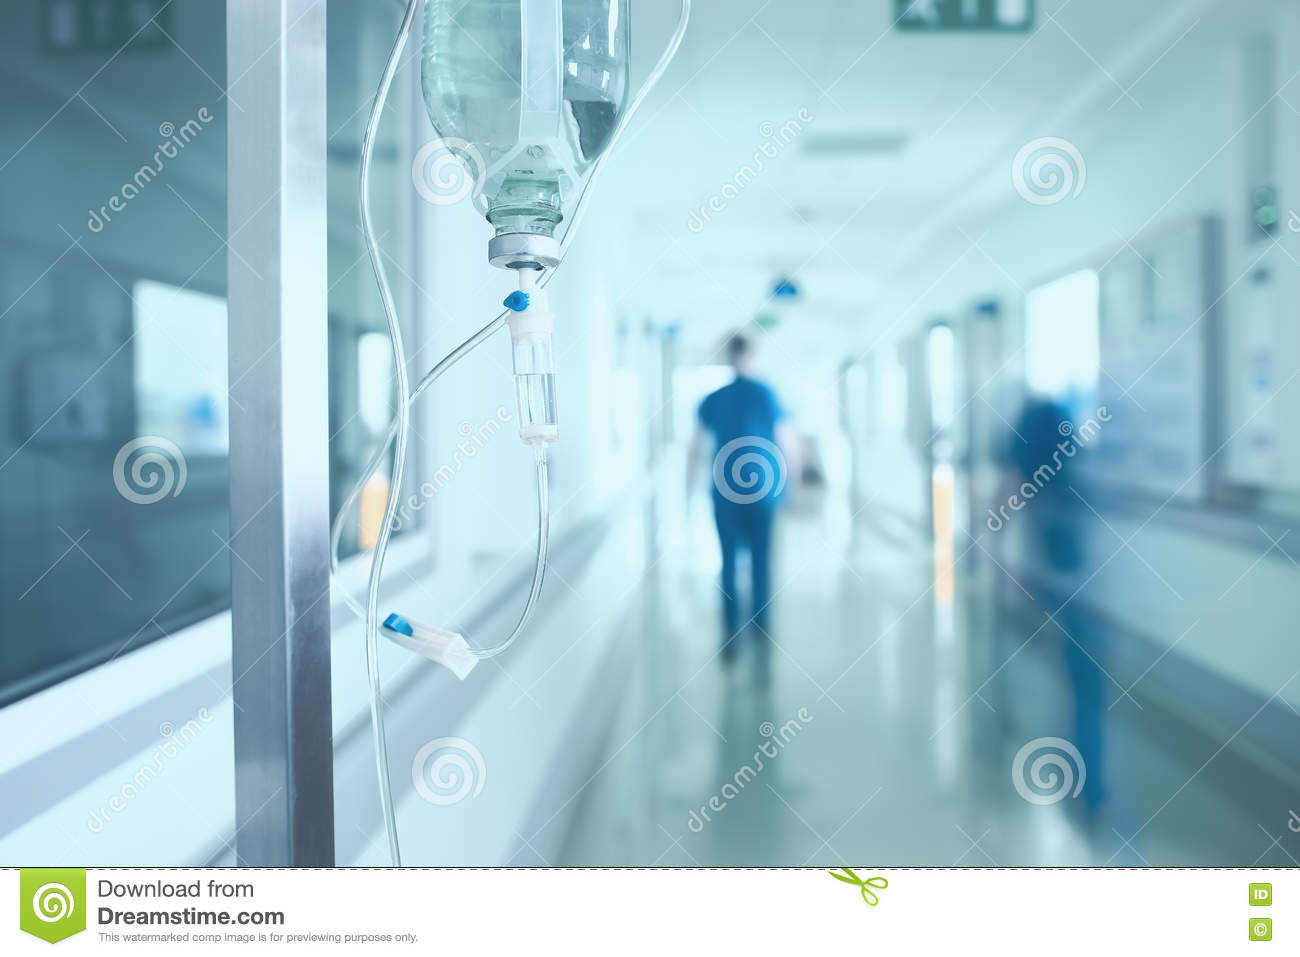 Silhouette of a doctor walking in a hurry in the hospital corridor